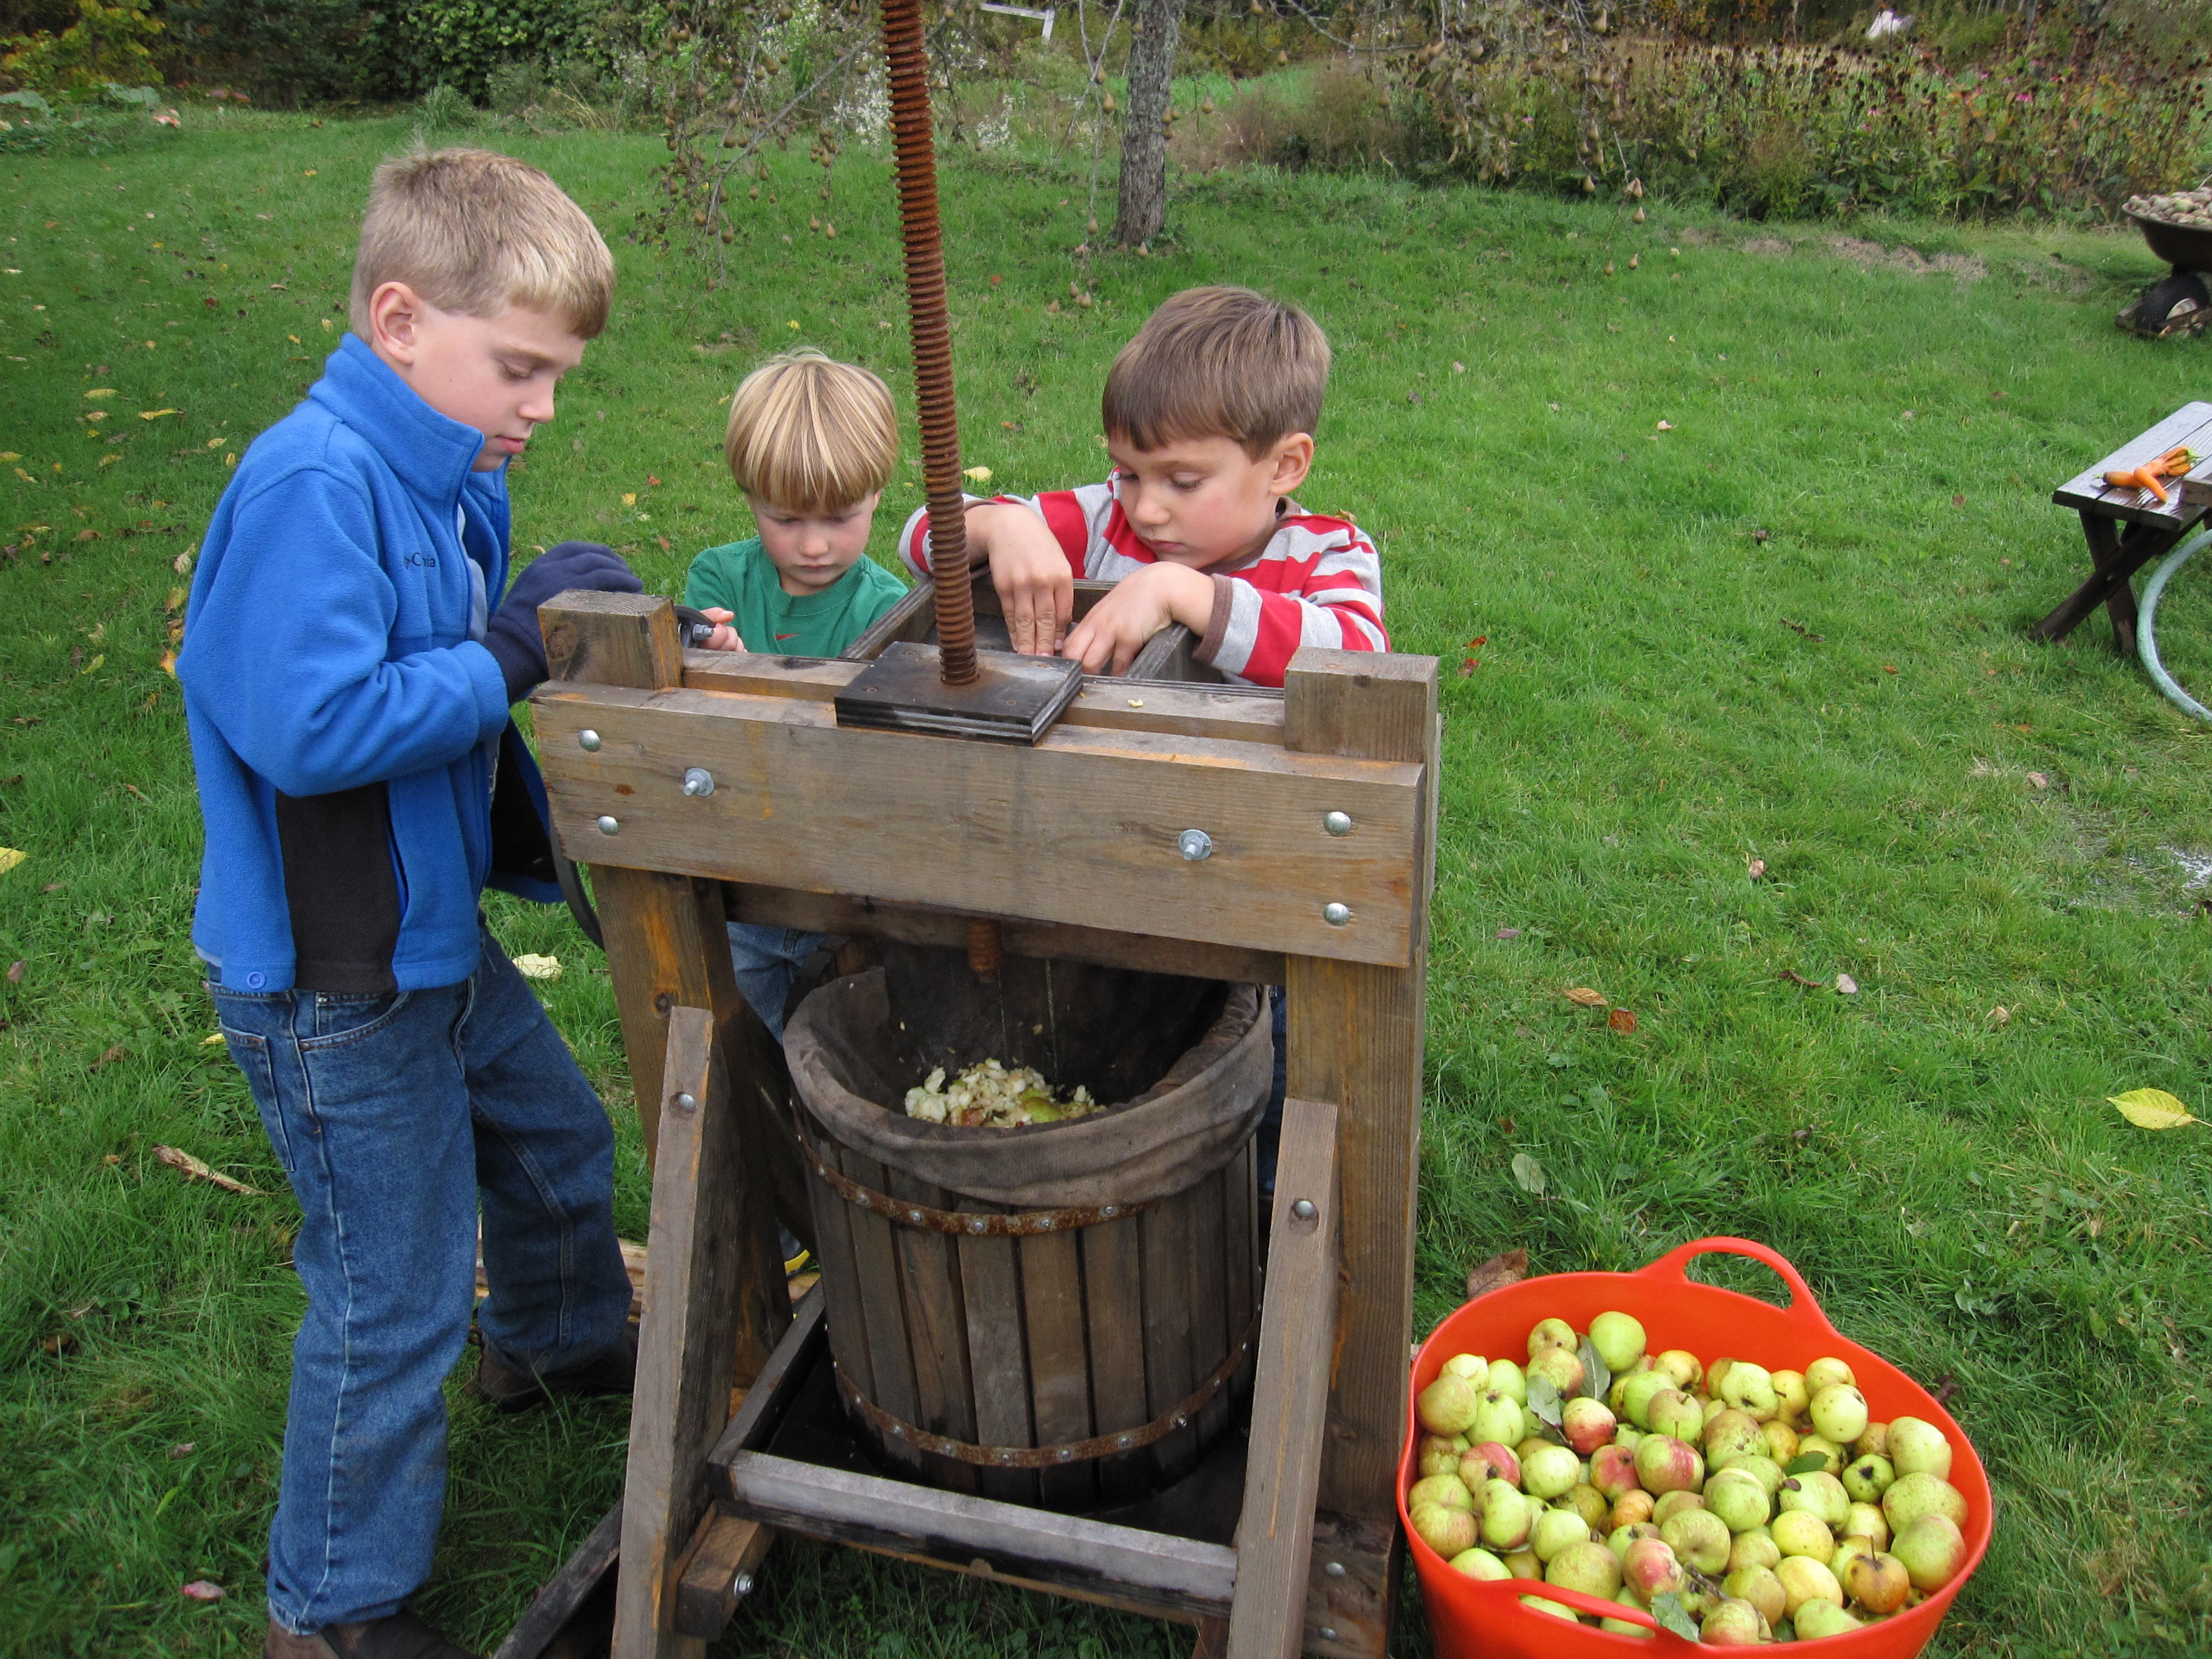 Eli and his cousins, getting the cider press warmed up for next Saturday's cider pressing at the farm.